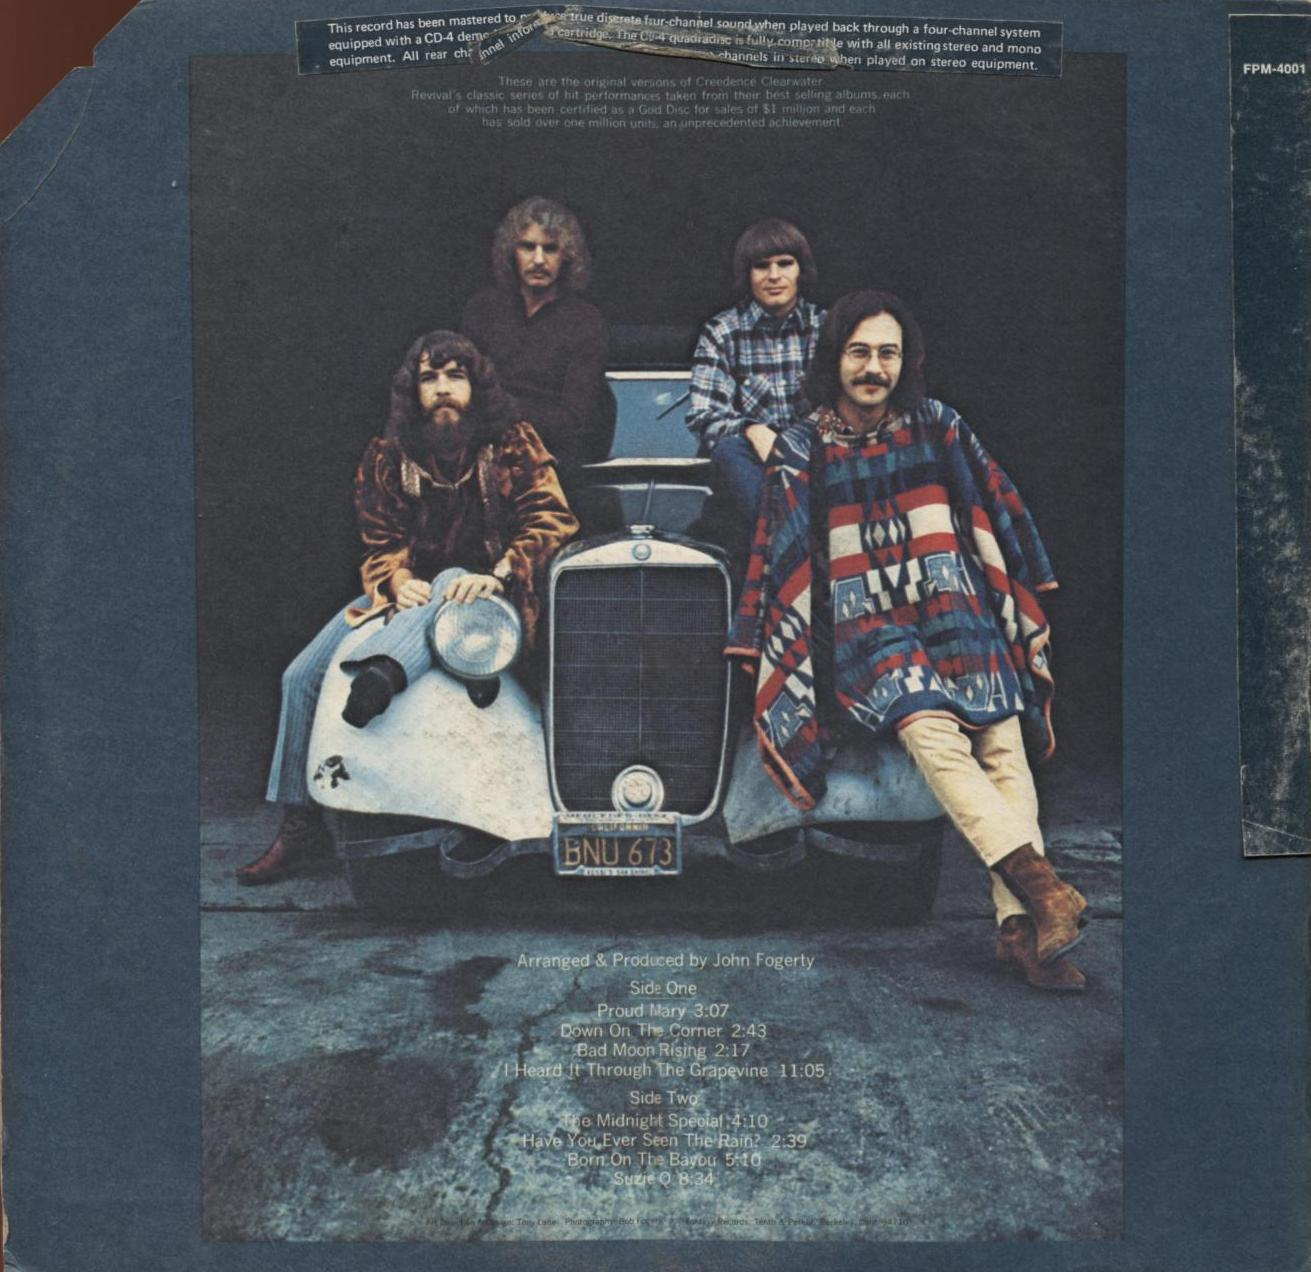 Rock] CCR - Creedence Clearwater Revival 1972 Creedence Gold